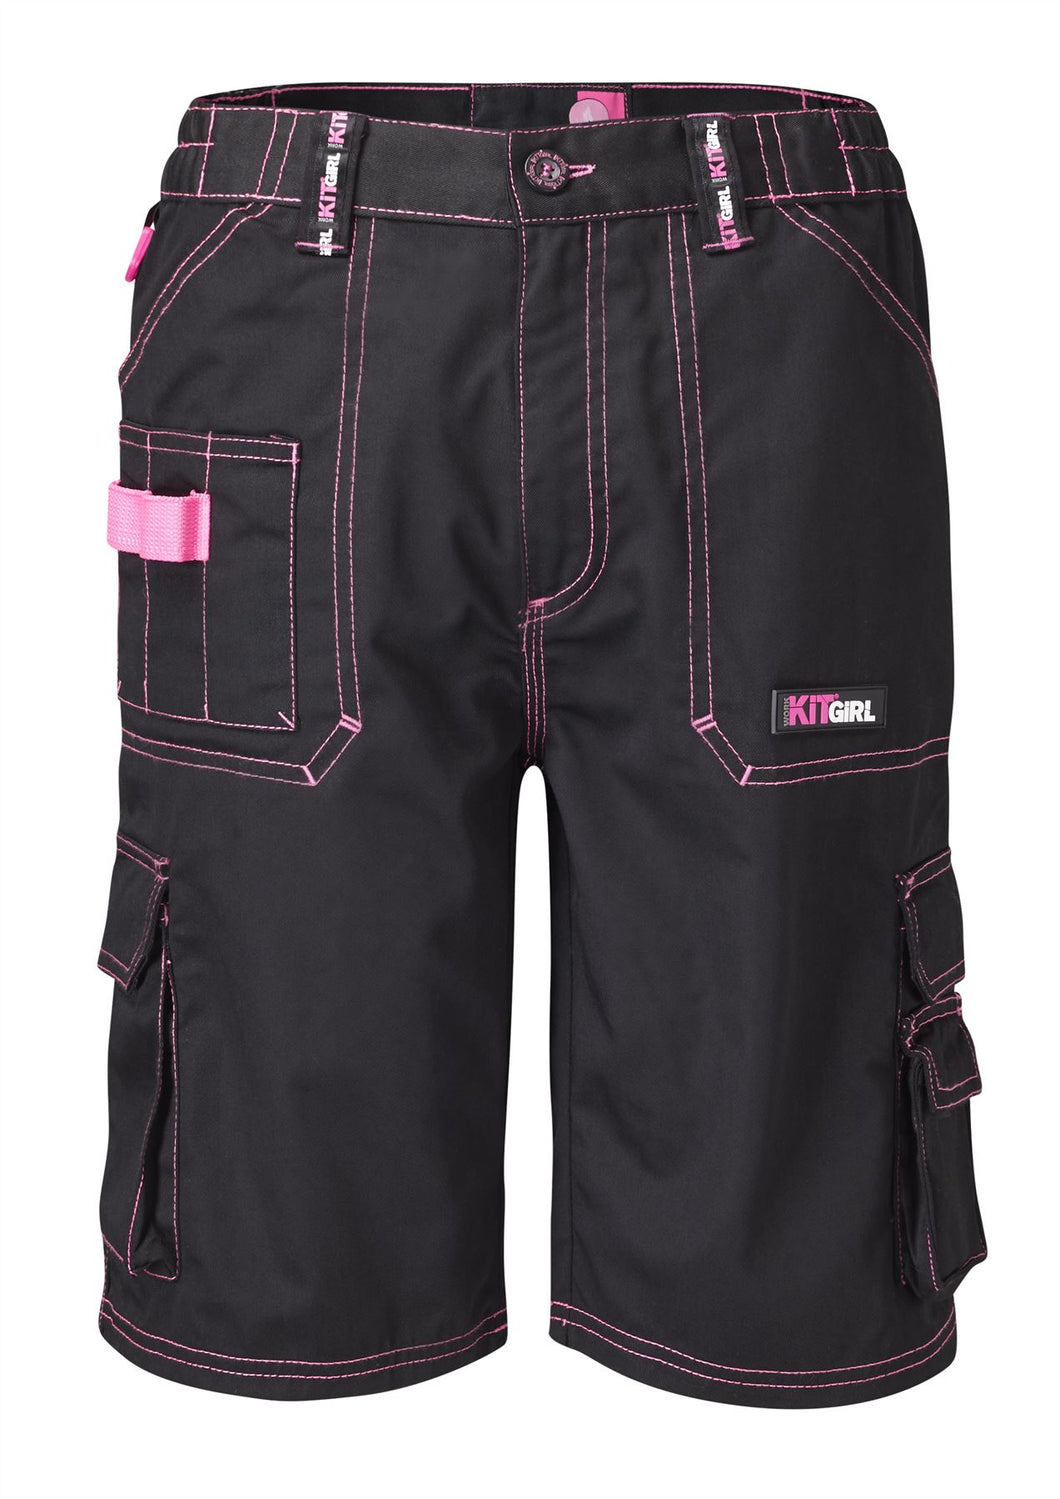 Womens Work Shorts - Black - Work Kit Girl